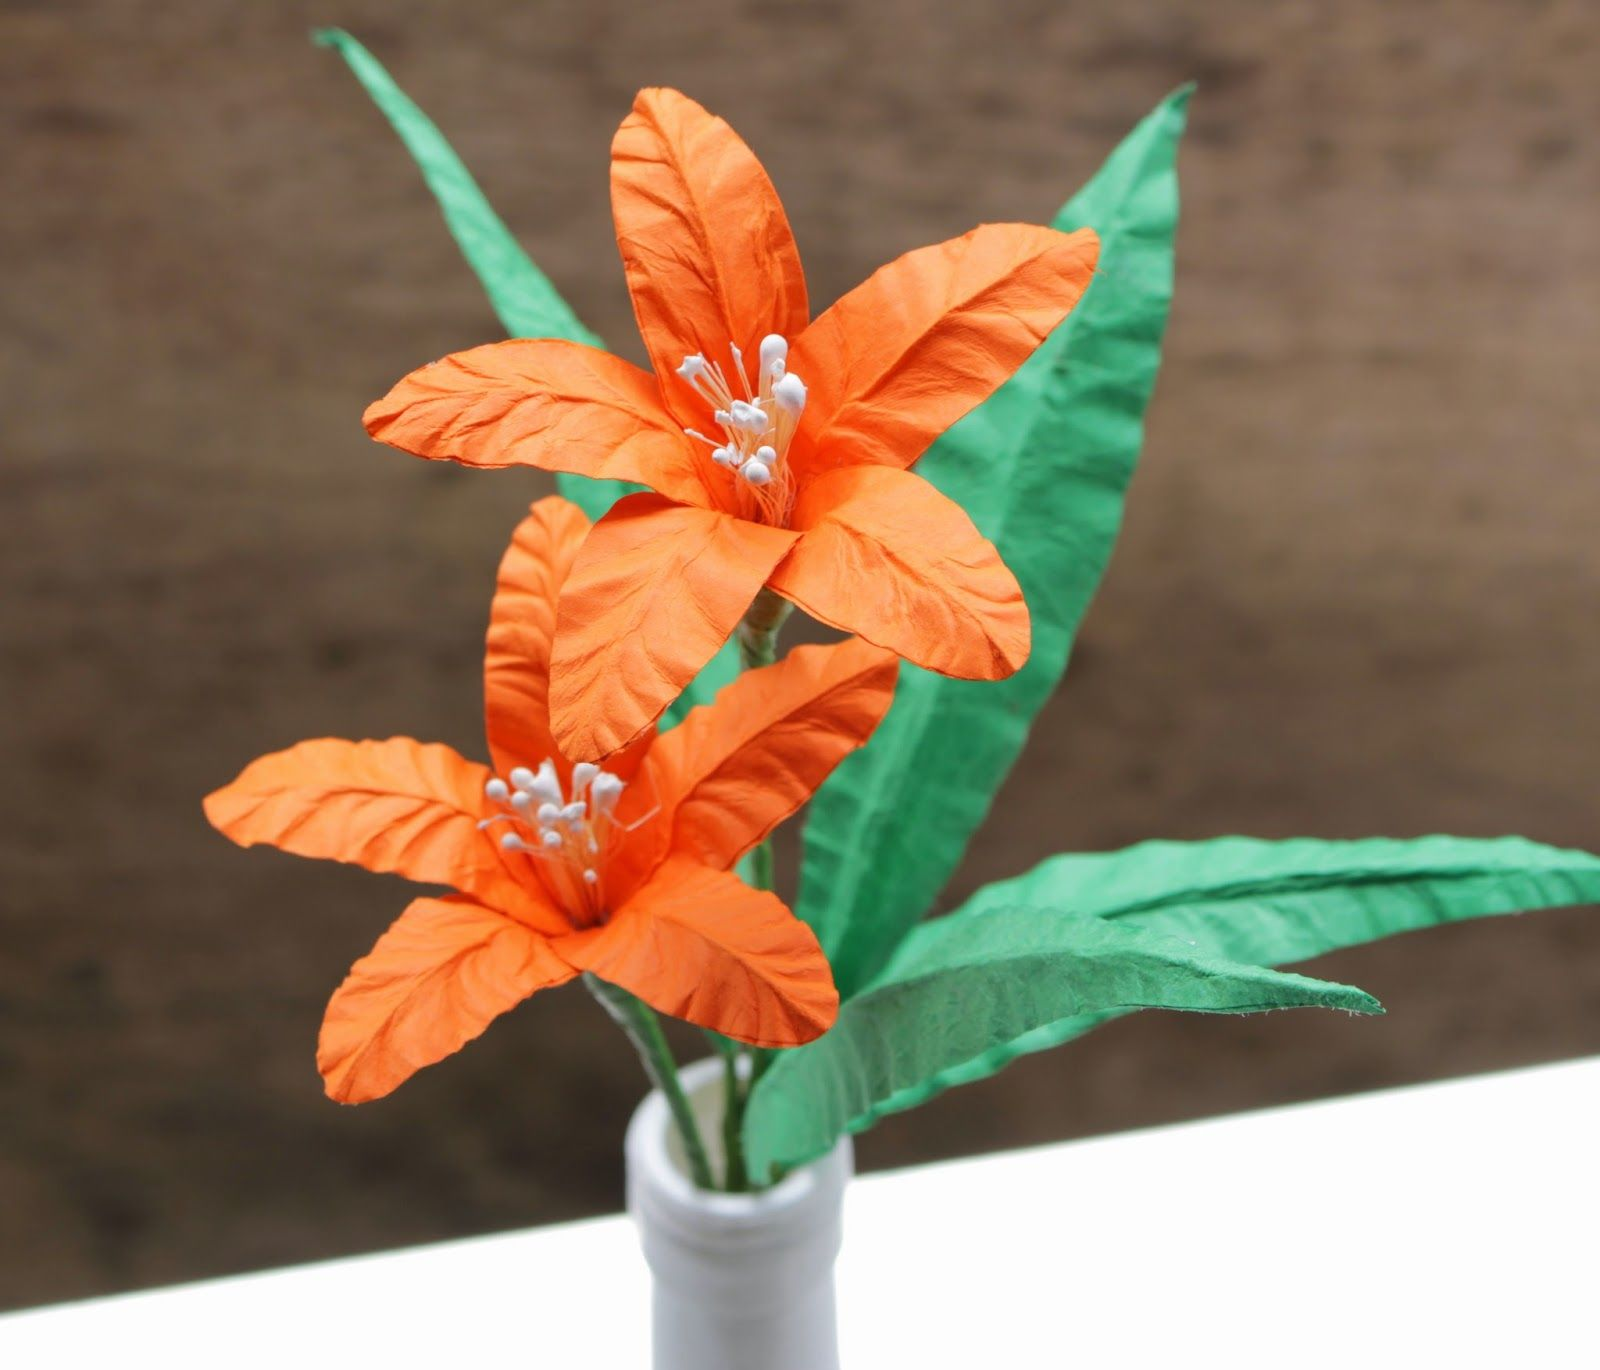 Diy how to make a paper lily reduce reuse recycle replenish diy how to make a paper lily reduce reuse recycle replenish izmirmasajfo